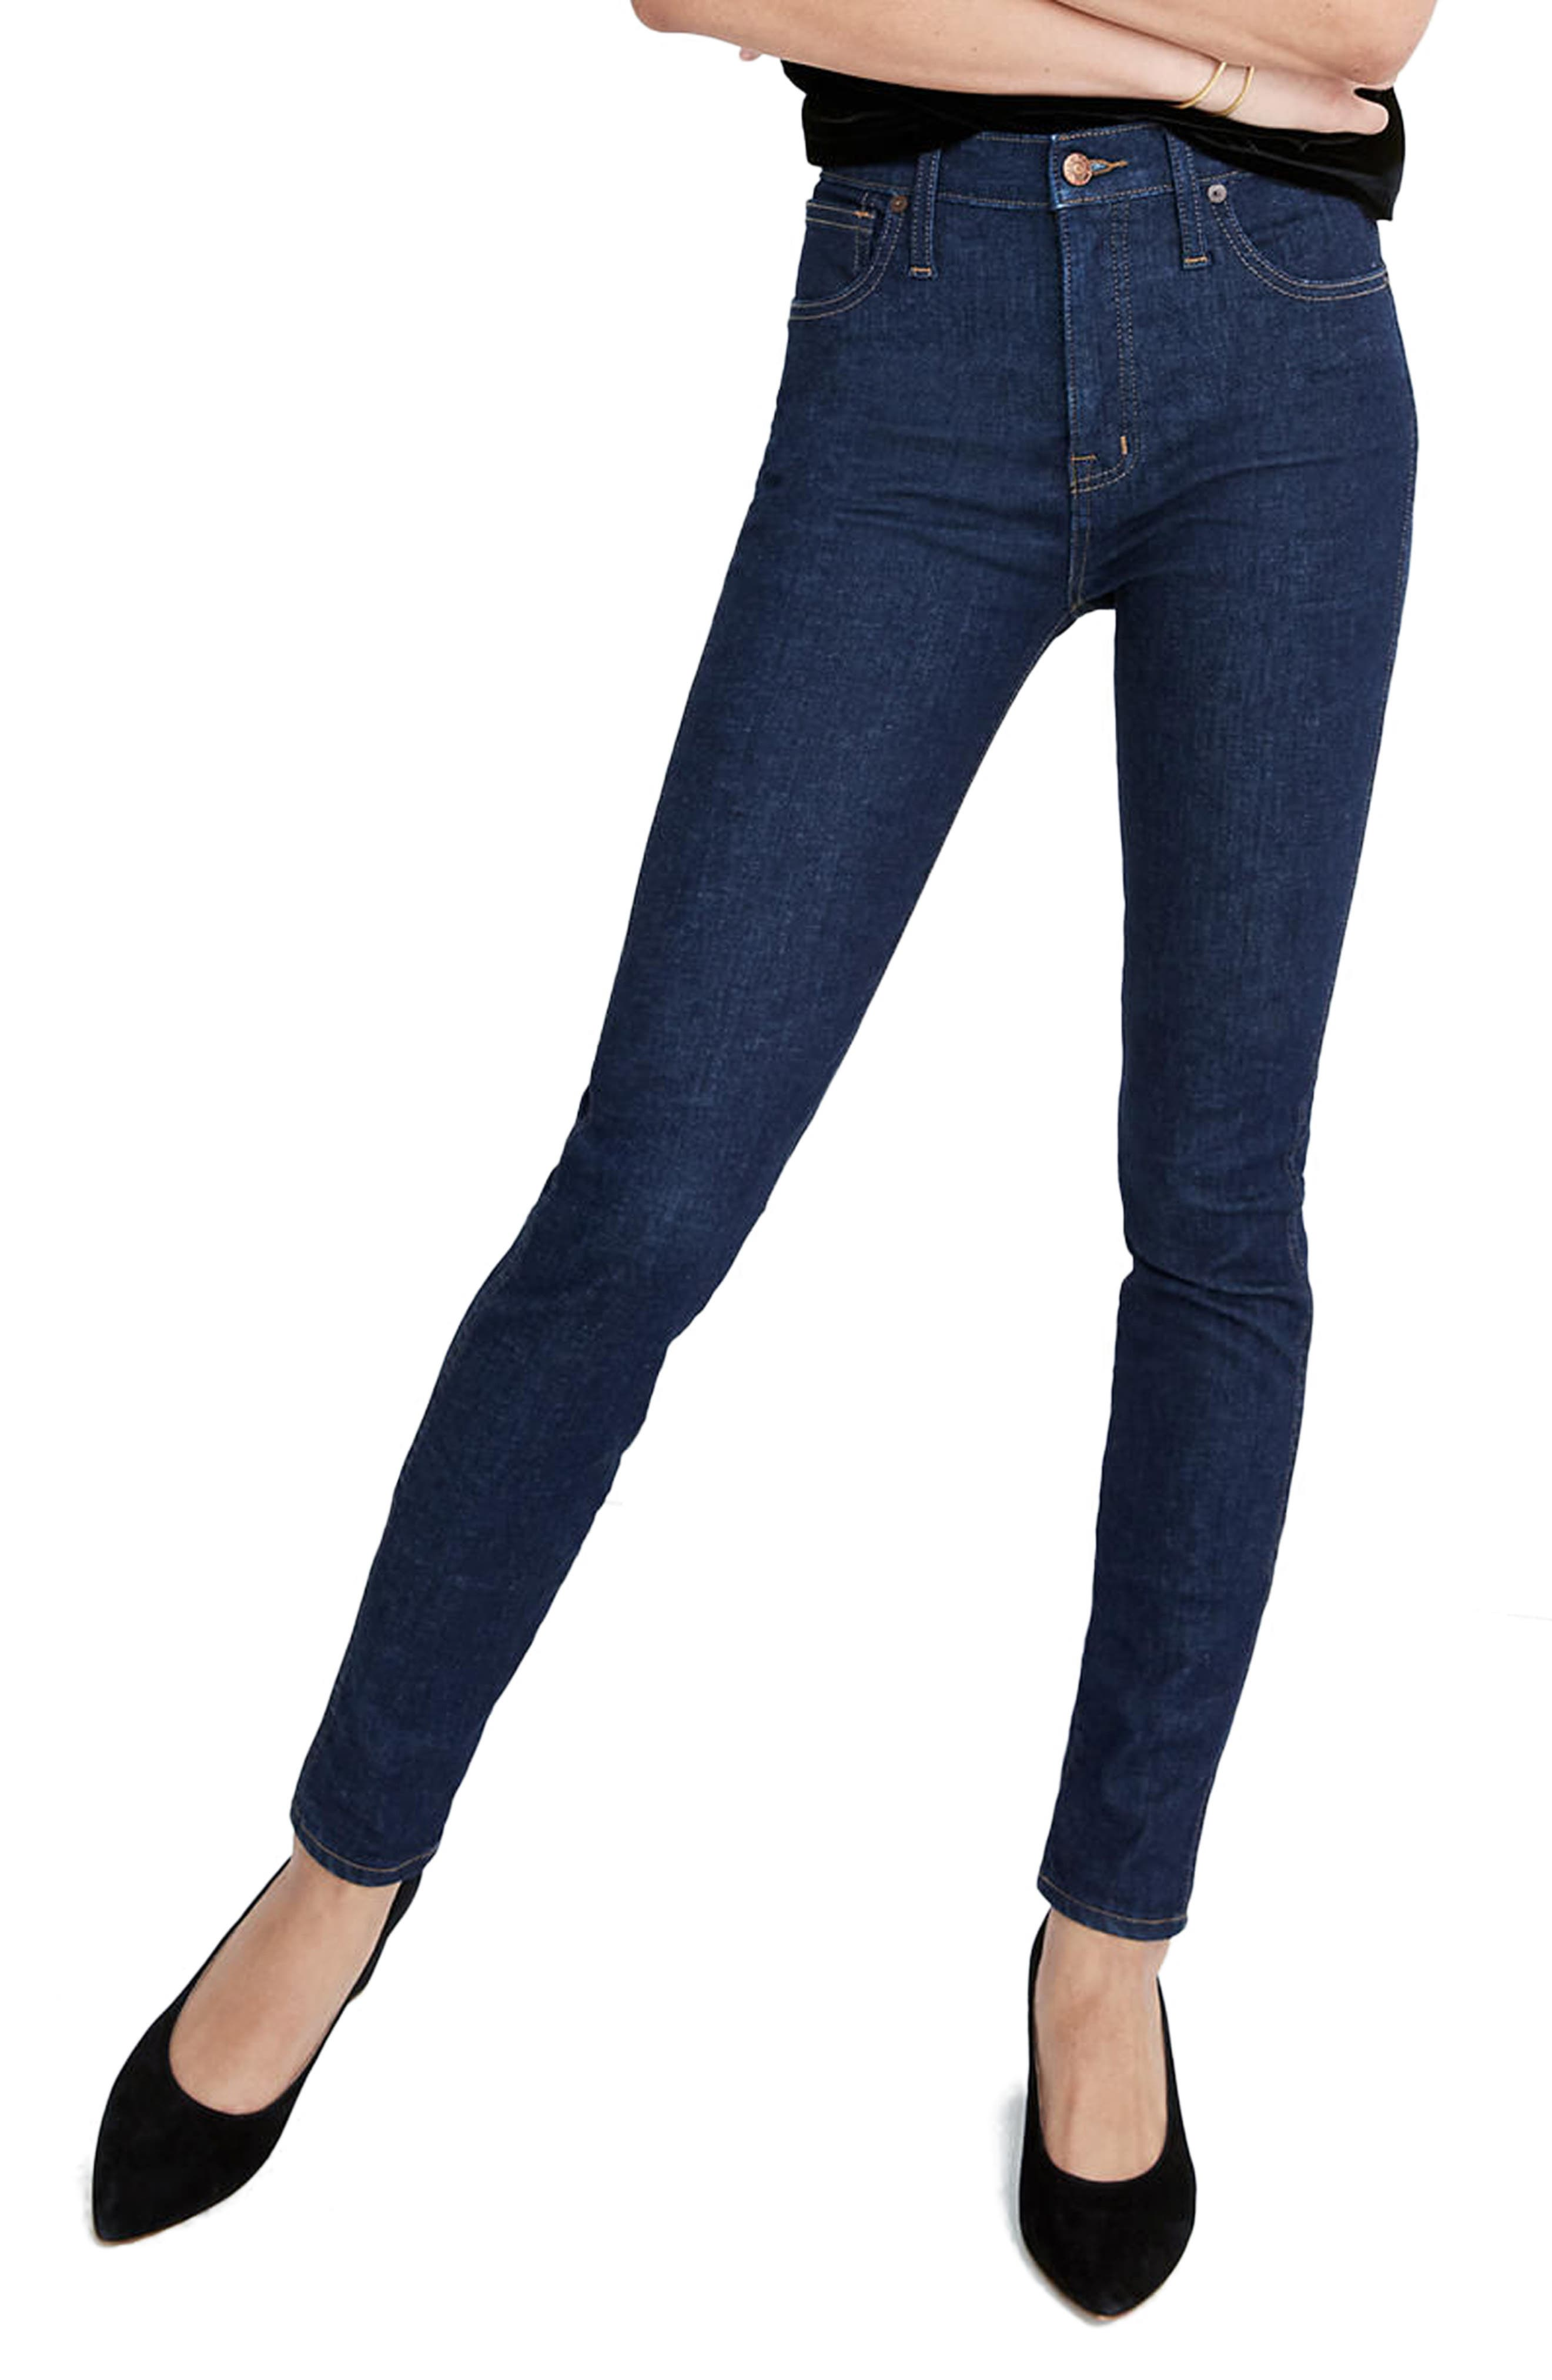 10-Inch High Waist Skinny Jeans,                             Main thumbnail 1, color,                             Lucille